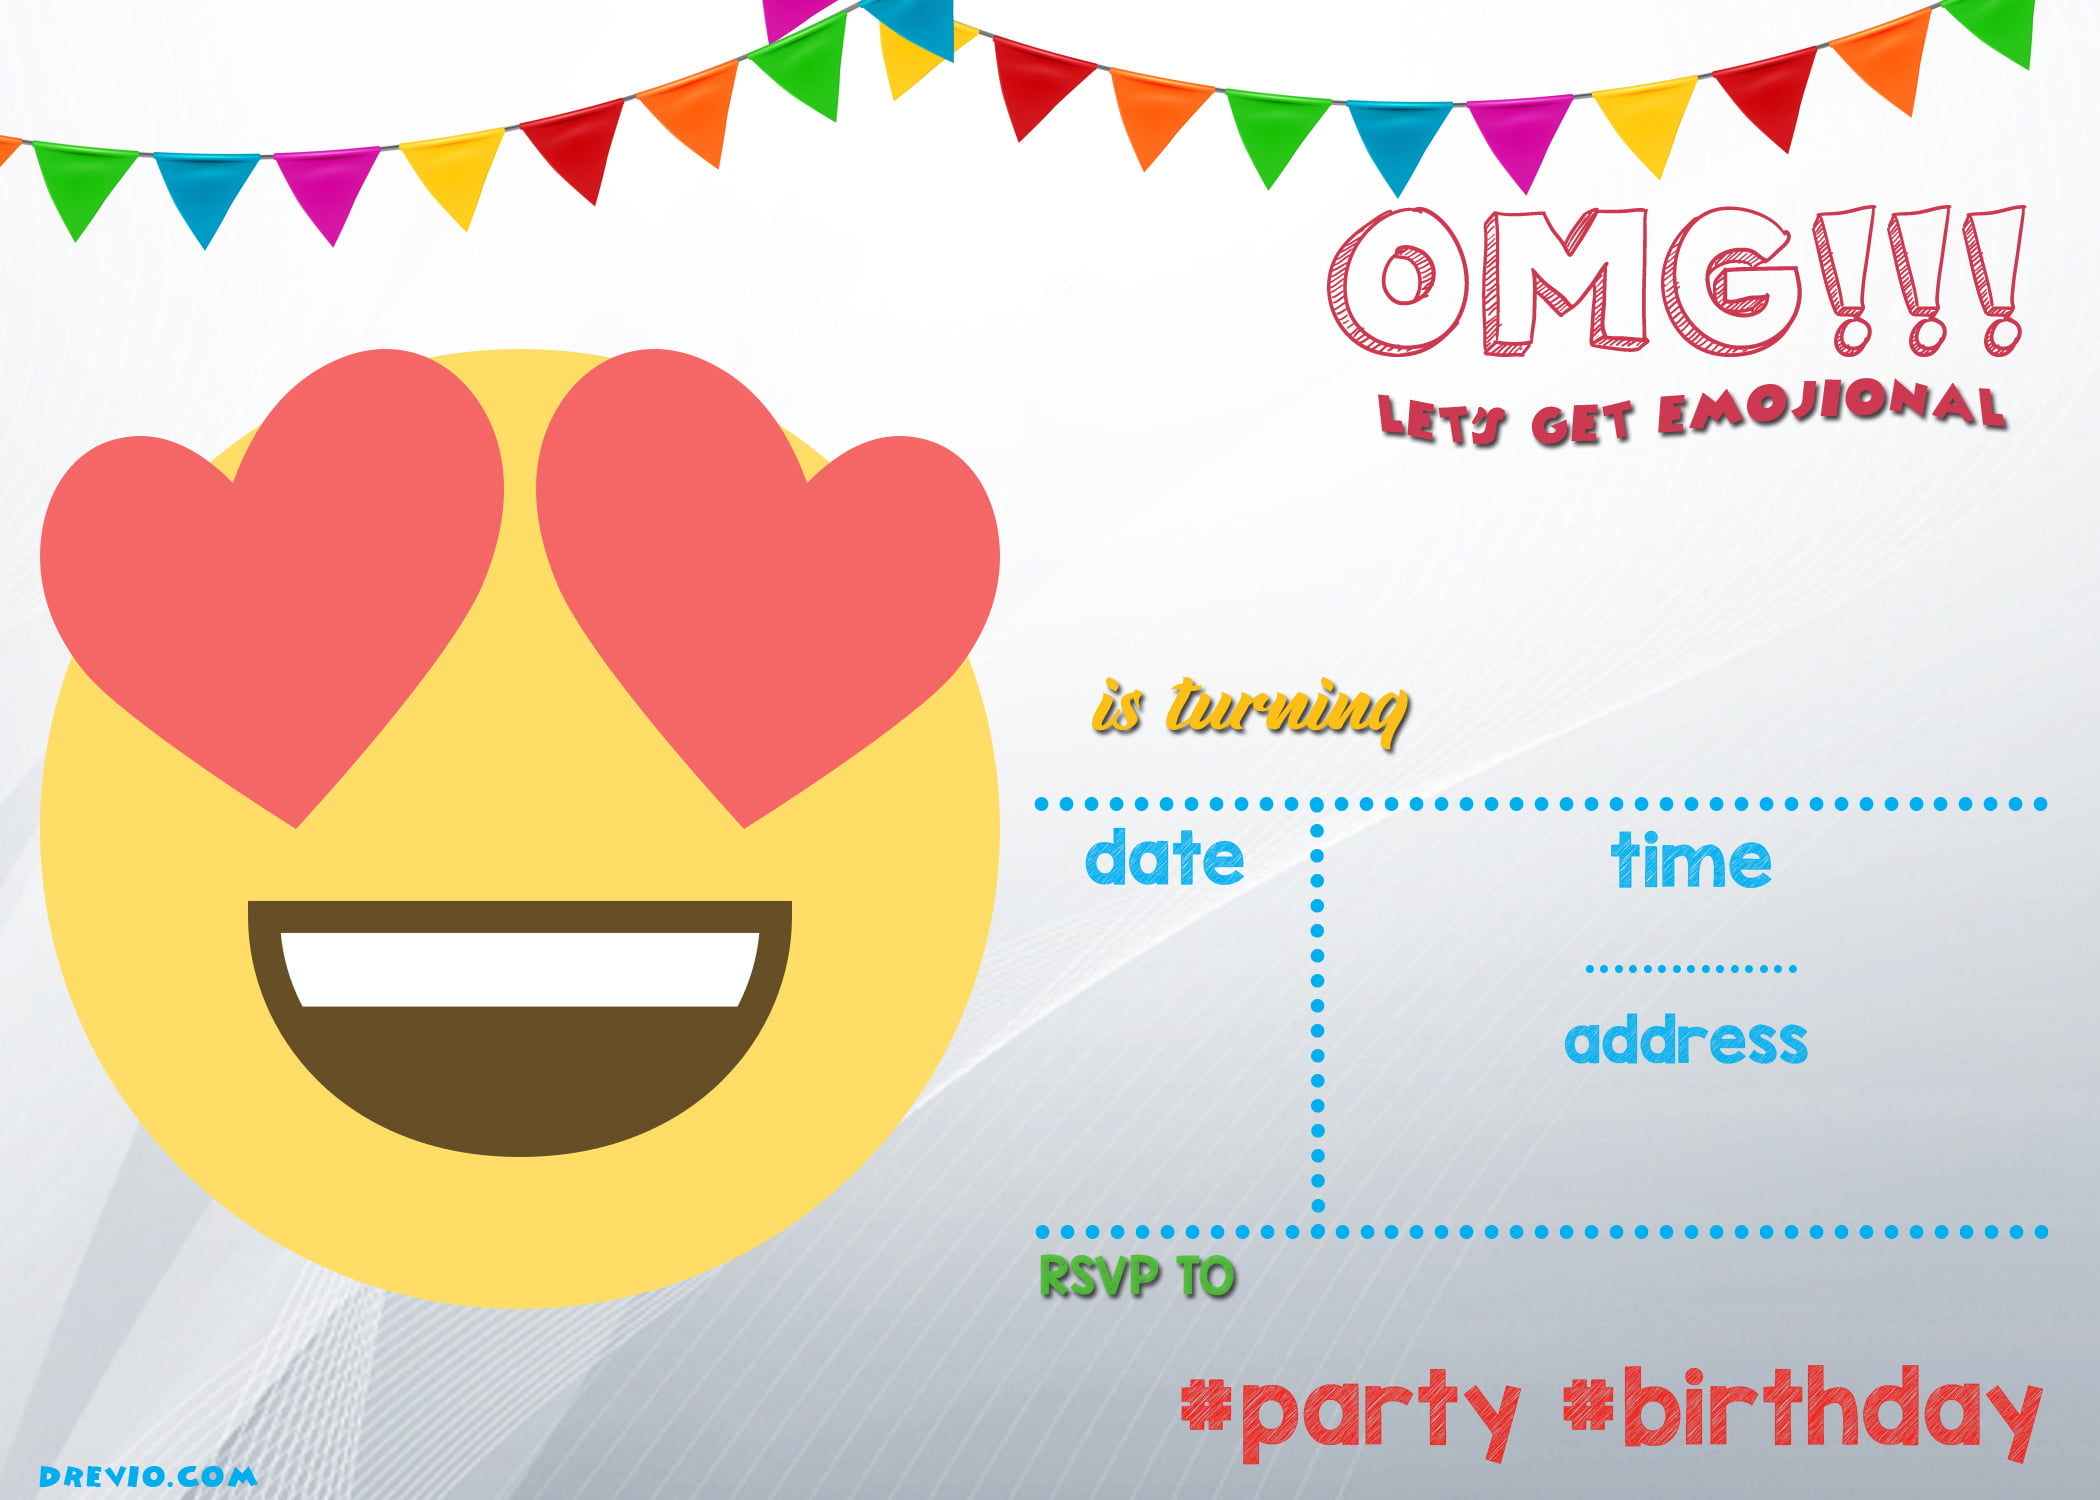 Endearing You Can Simply Download Free Birthday Invitation By Clicking Image N Download Invitation Free Printable Emoji Invitation Template Free Invitation Templates invitations Emoji Birthday Invitations